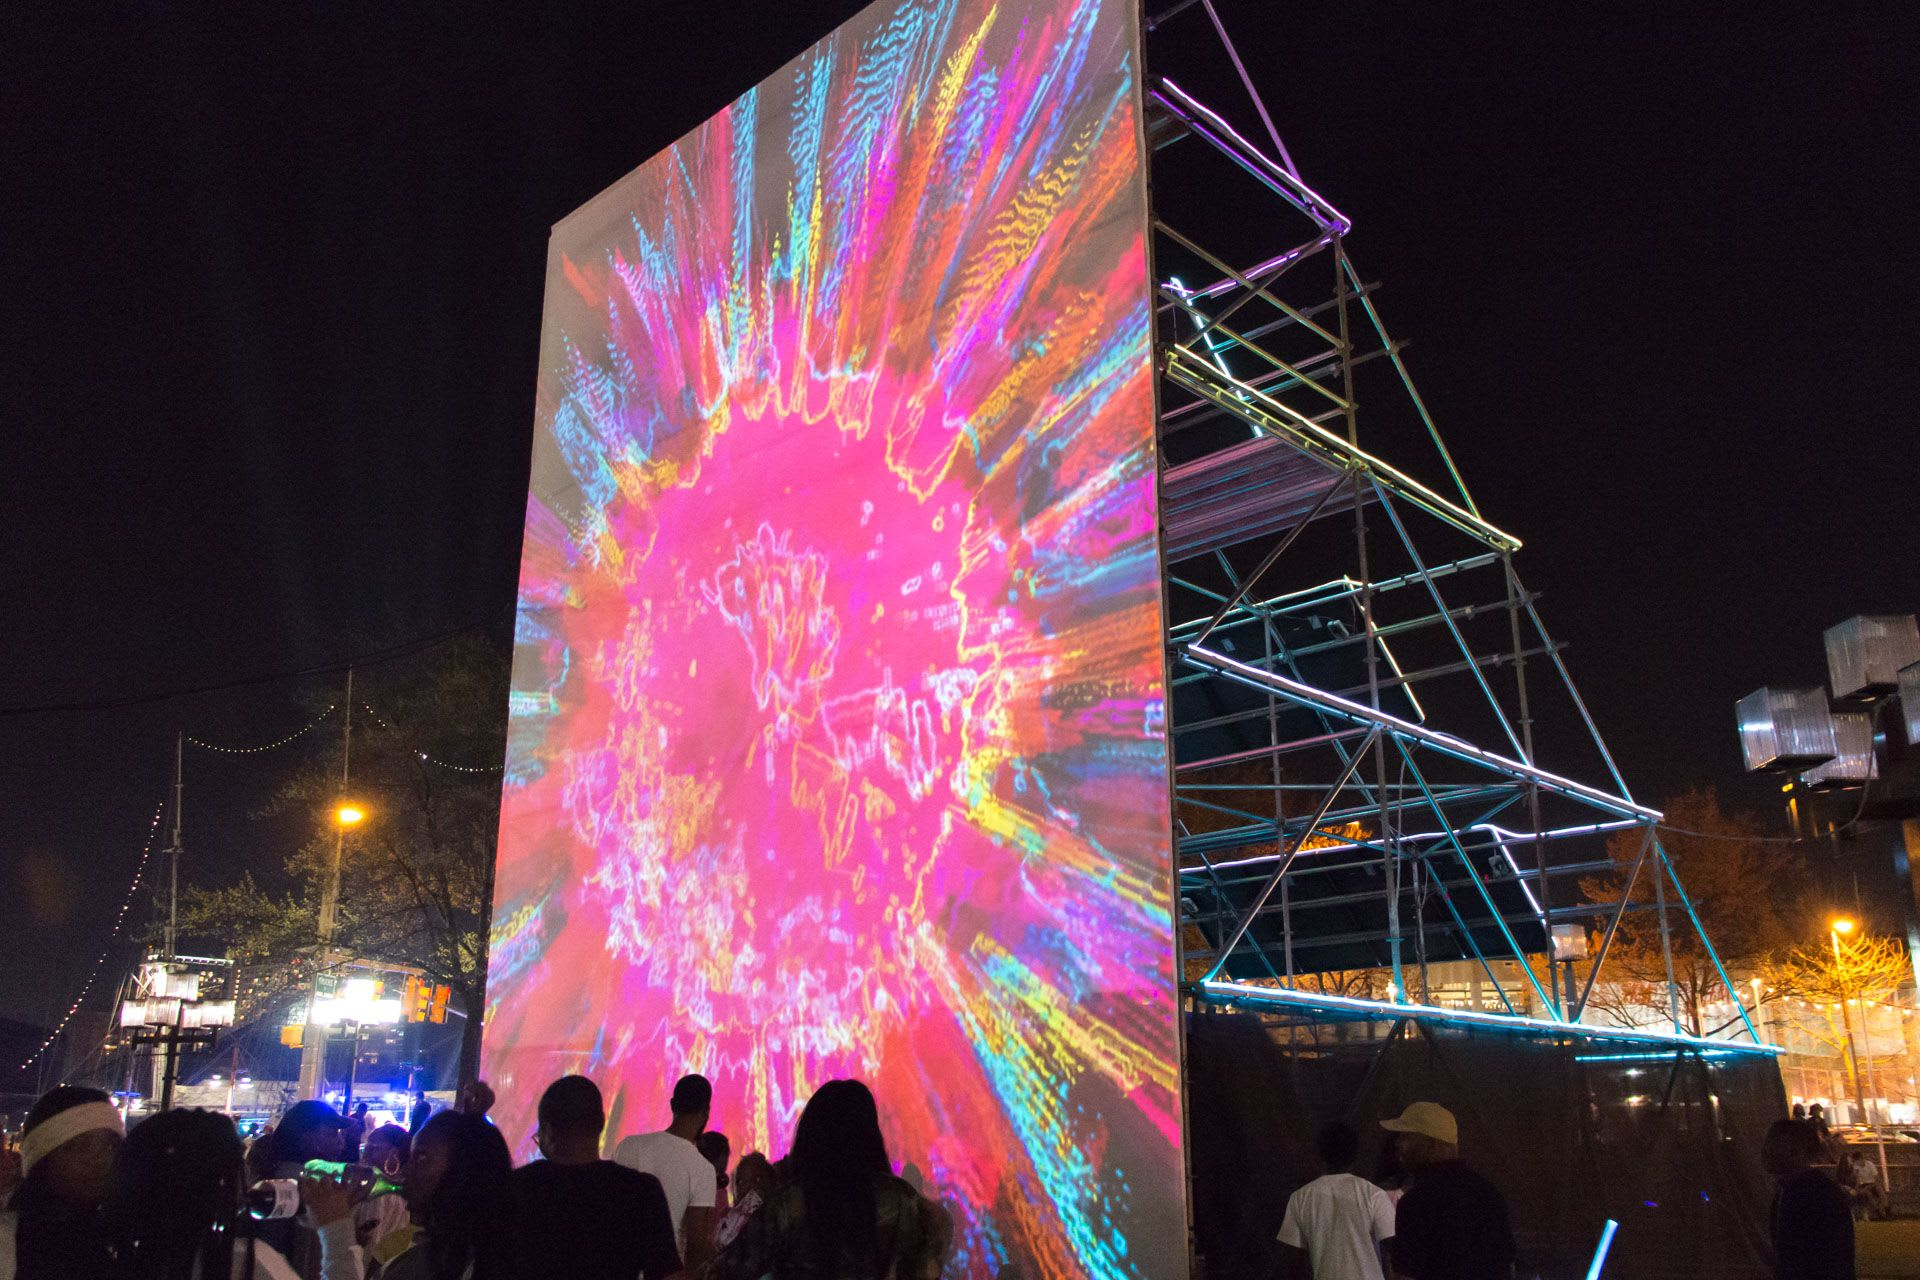 Public Art by Graham Projects seen at McKeldin Square, Baltimore - Sun Stomp